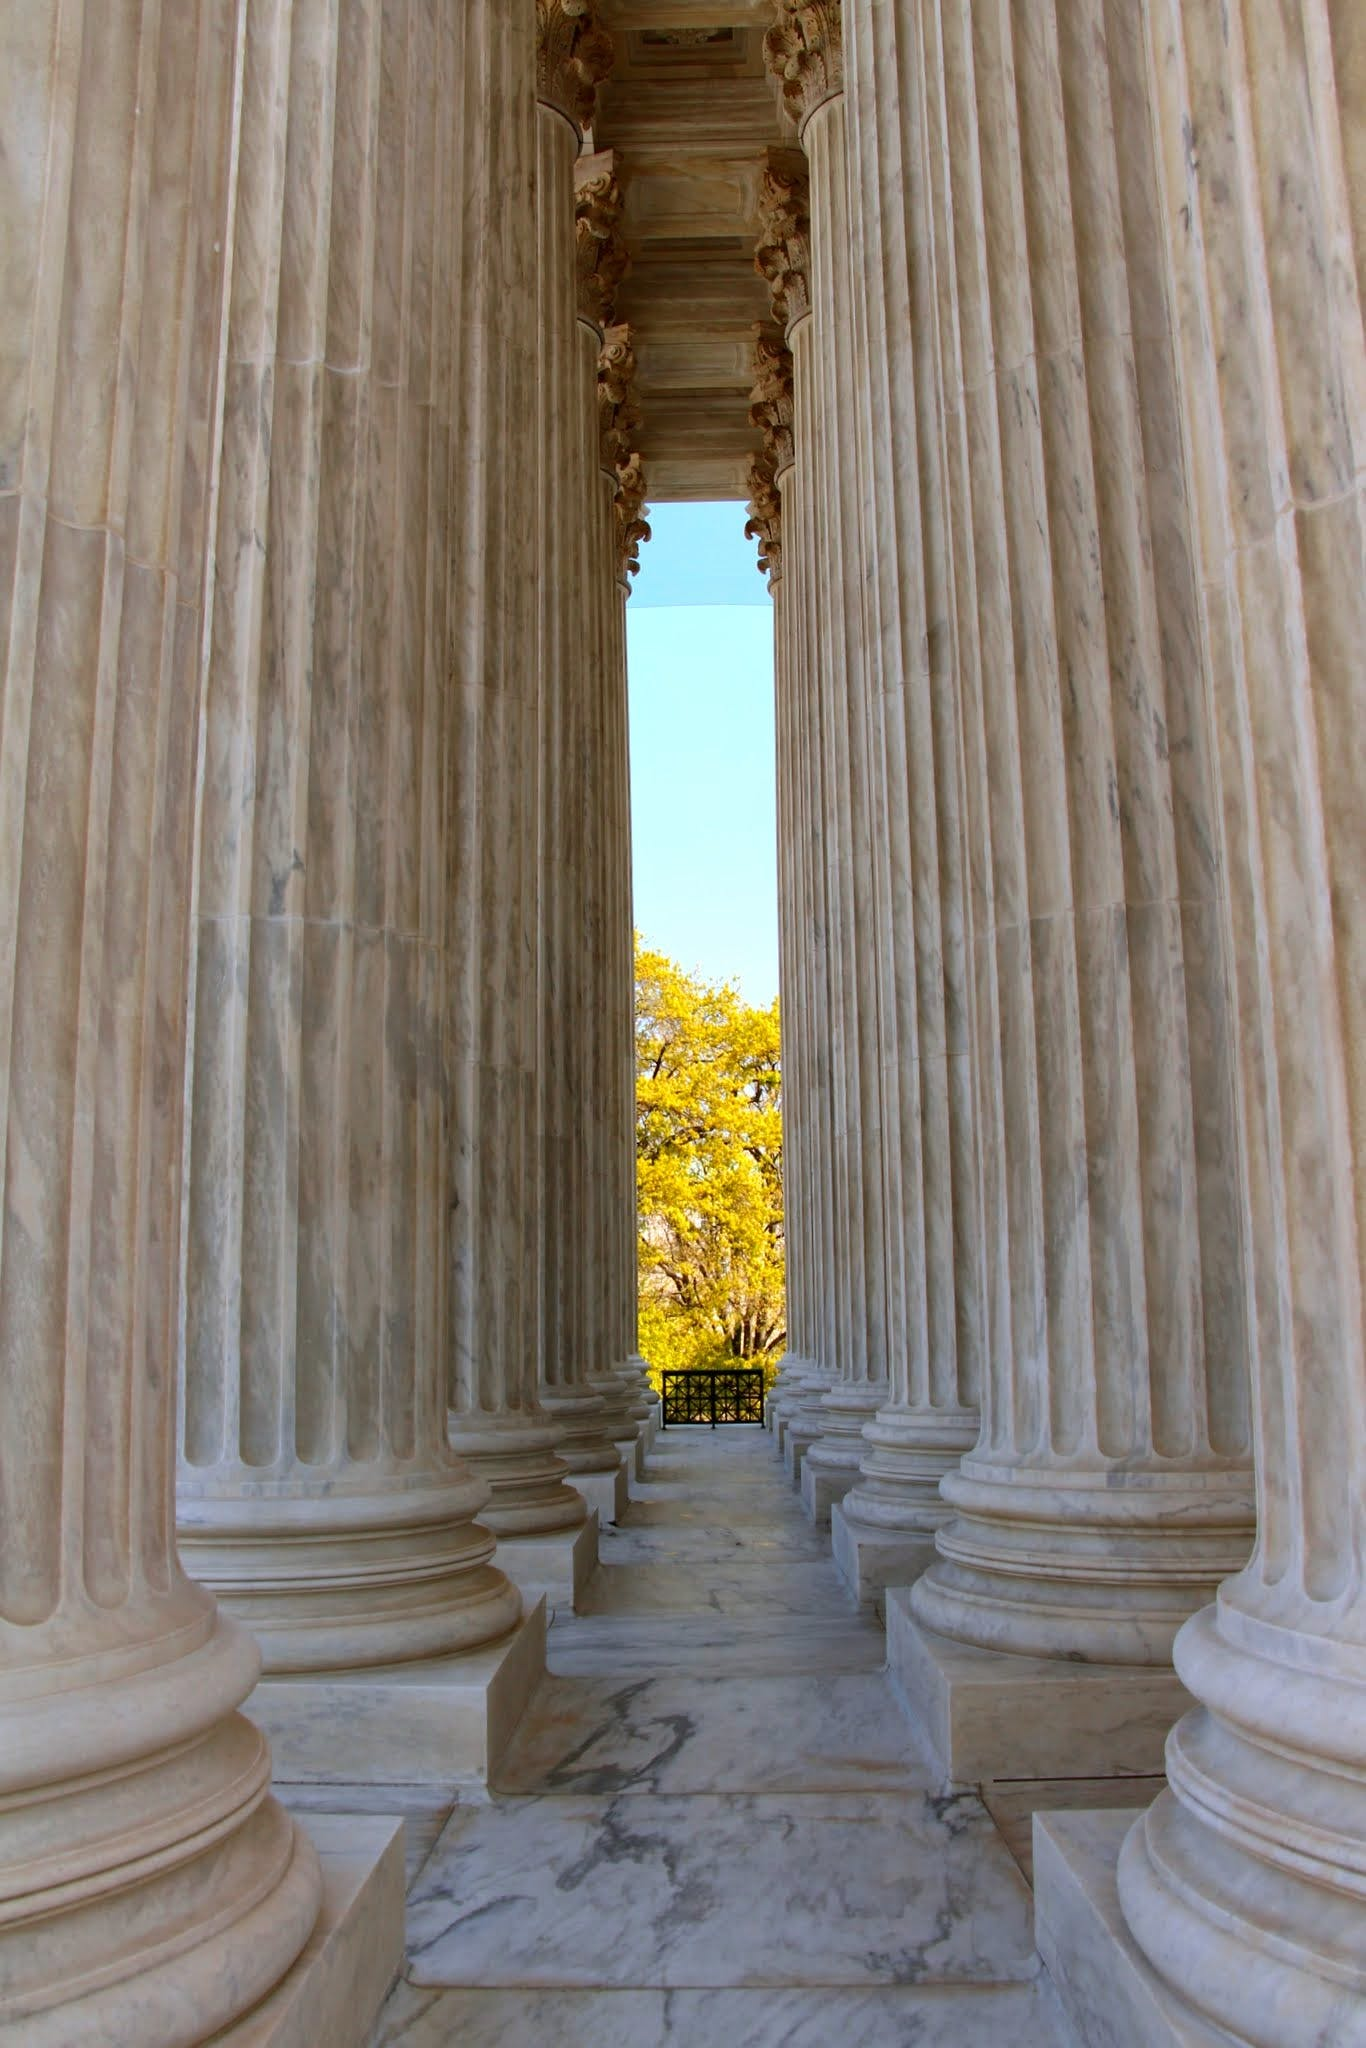 Free stock photo of courthouse, granite, pillar, pillars